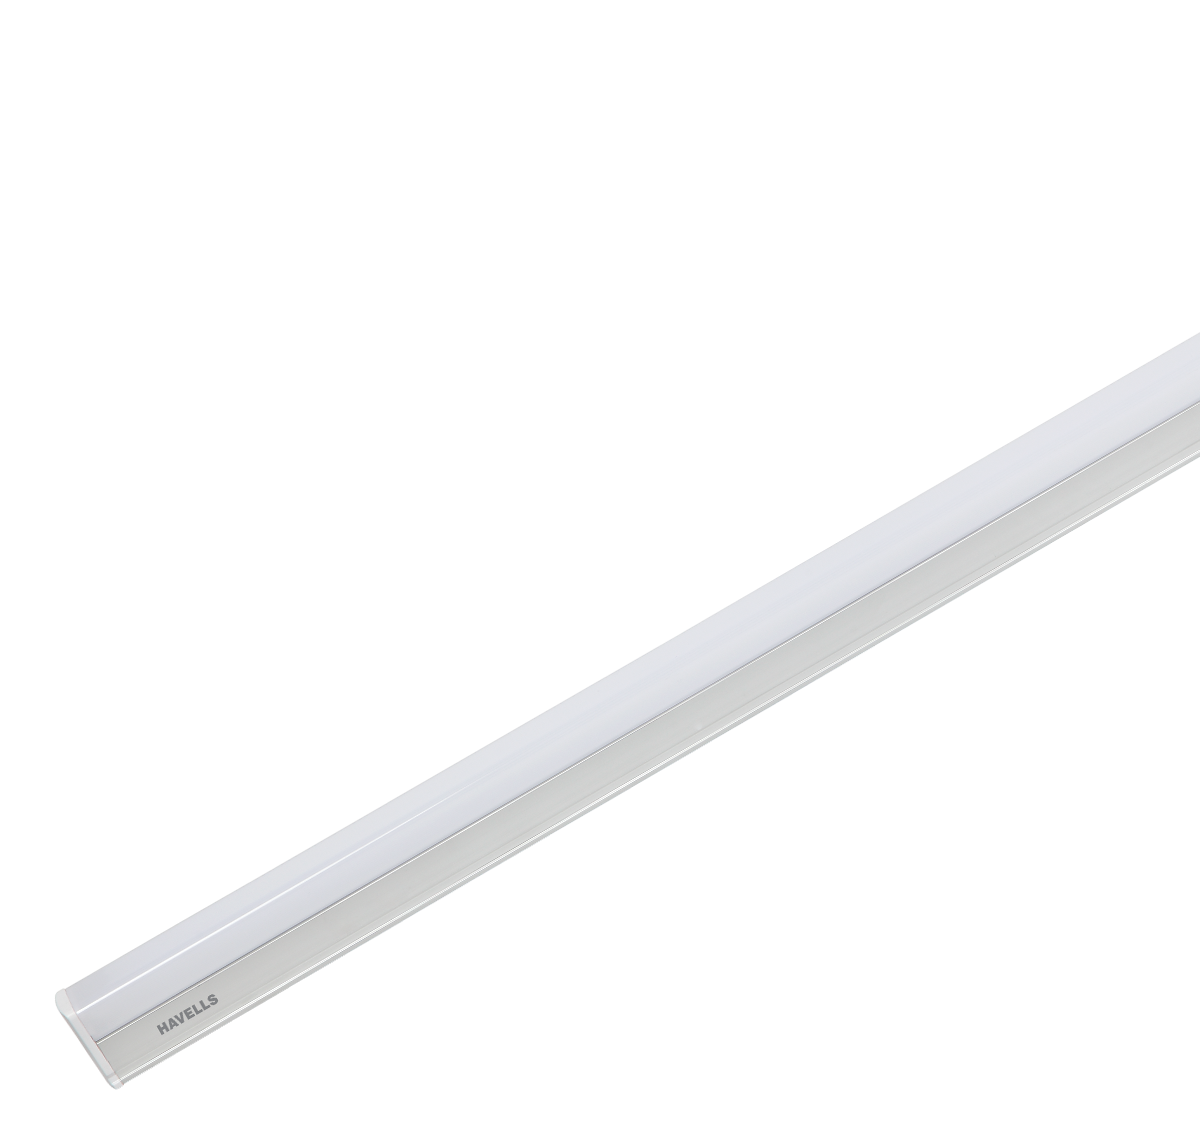 LED Pride Plus Curve Batten 36 W 6500 K